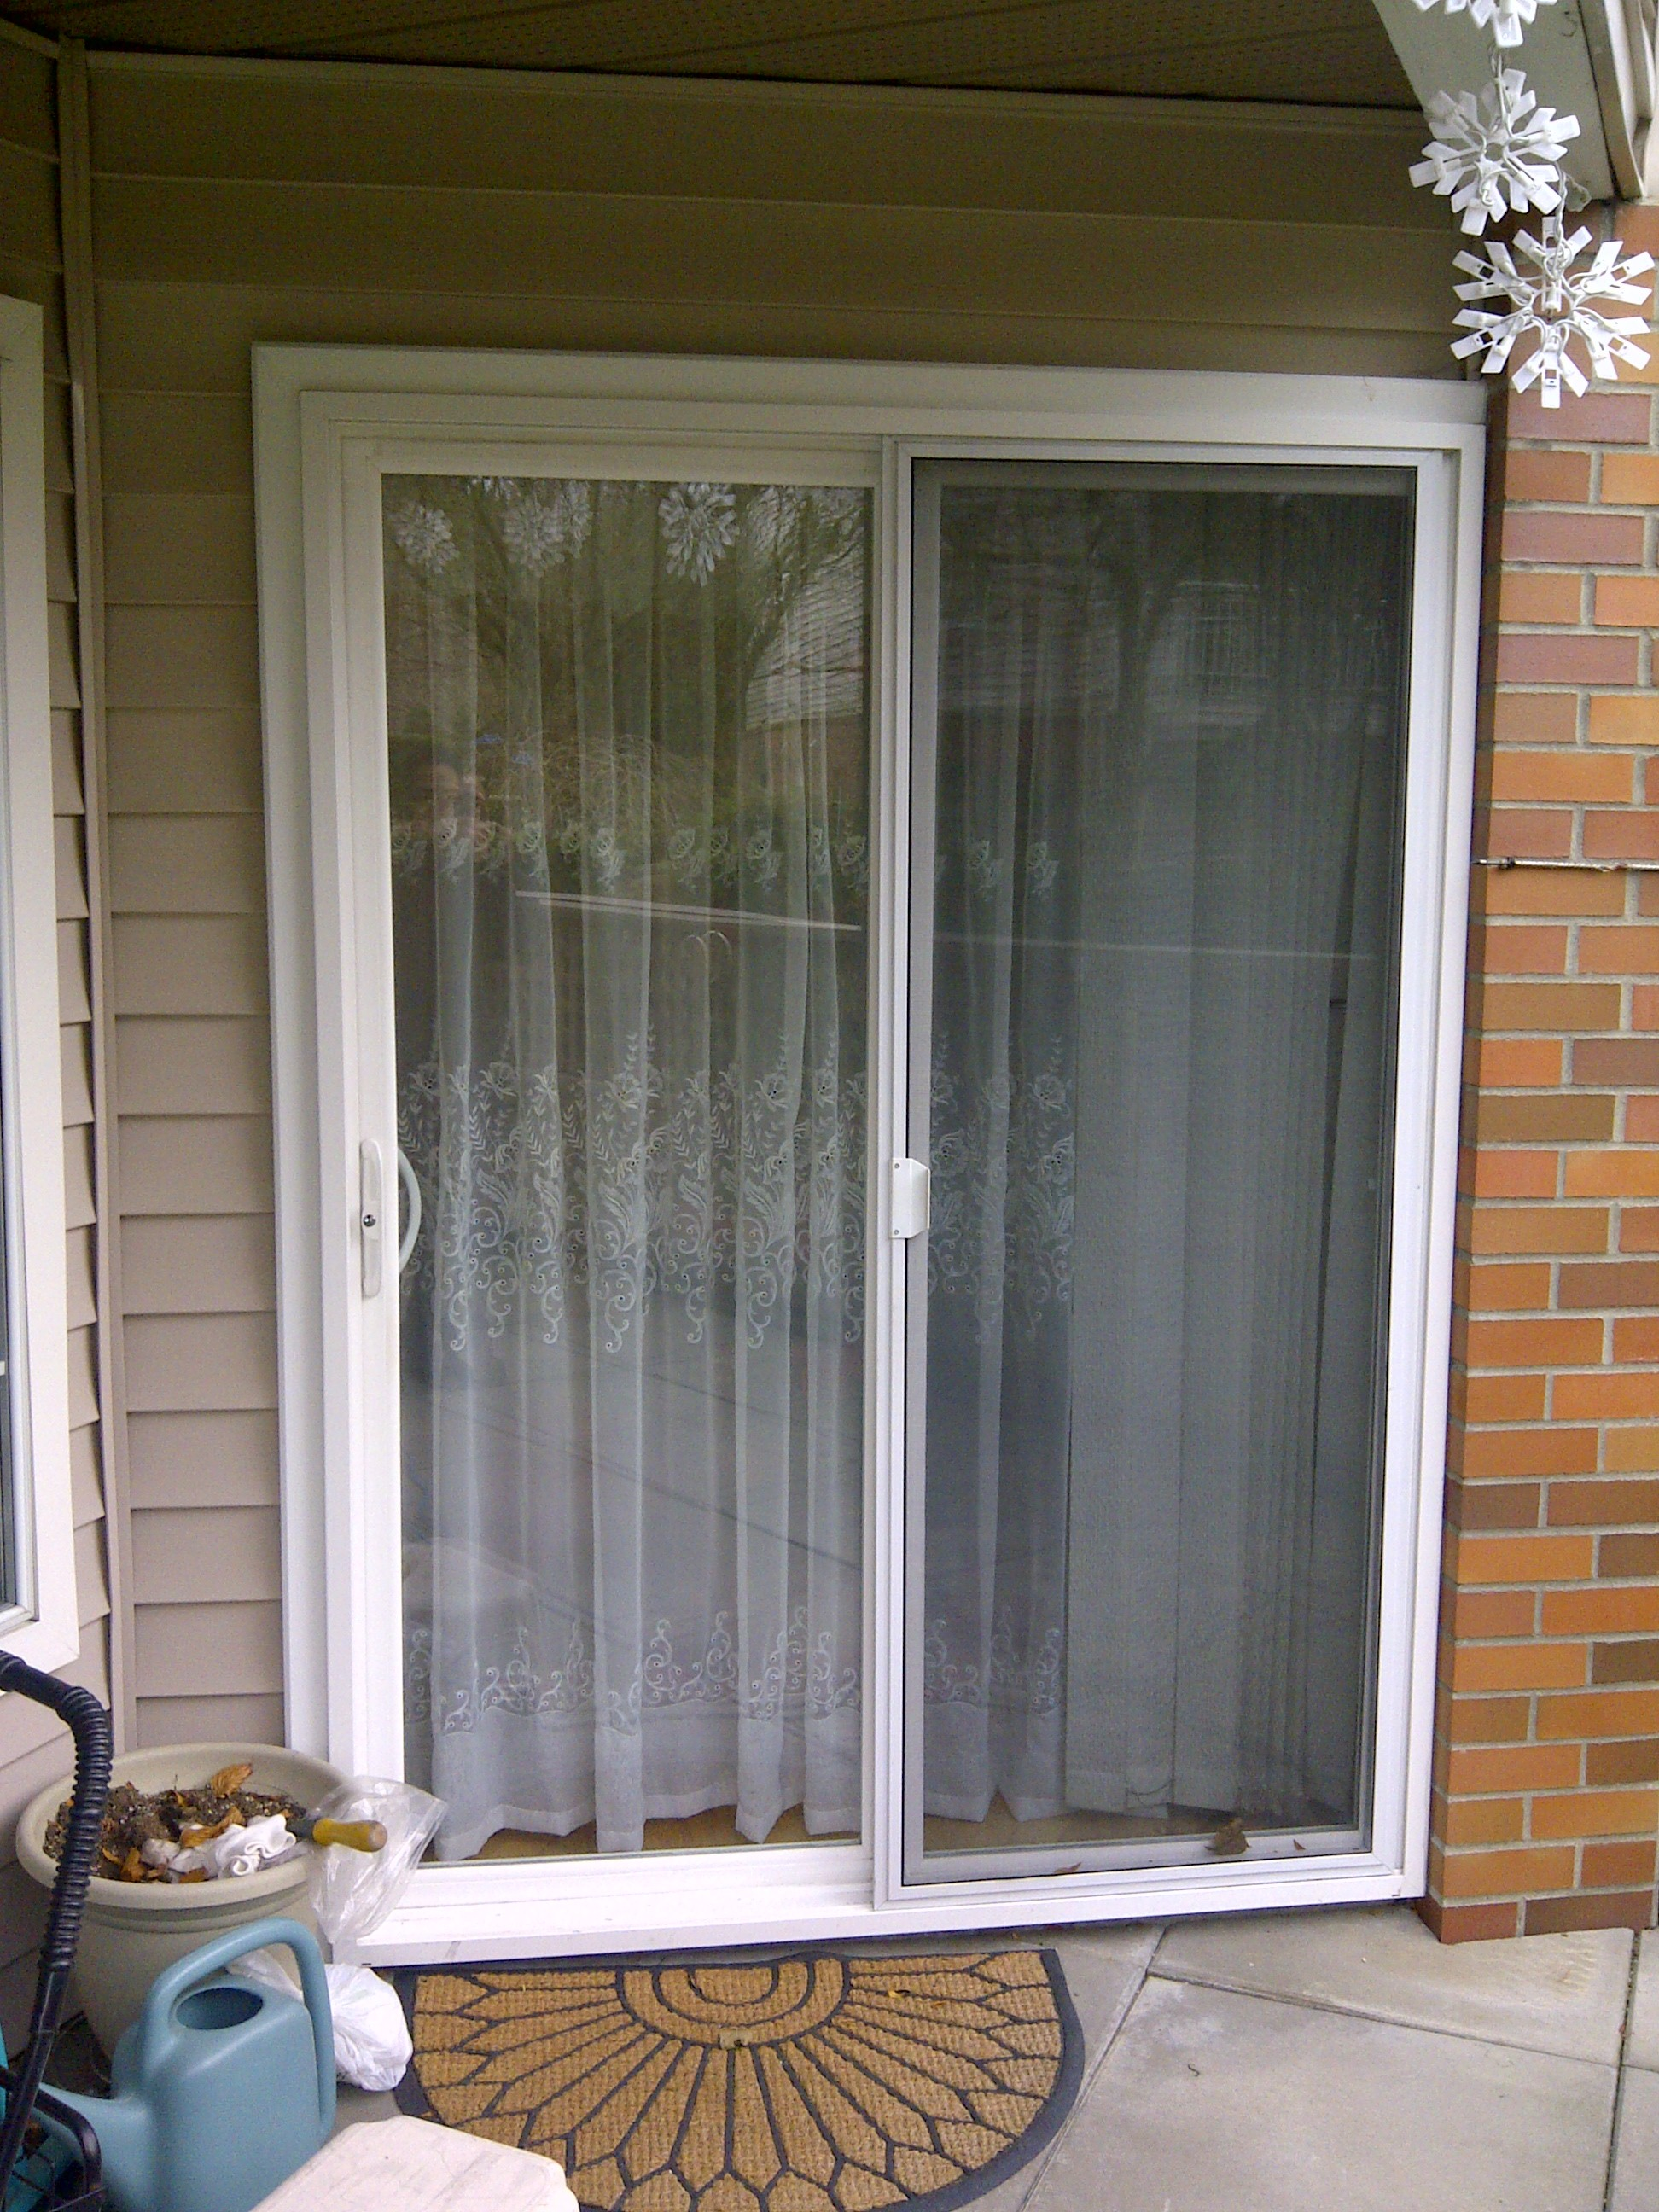 2592 #926139 Glass Door Vancouver Repair Replace & Install pic Glass Entry Doors Residential 39611944